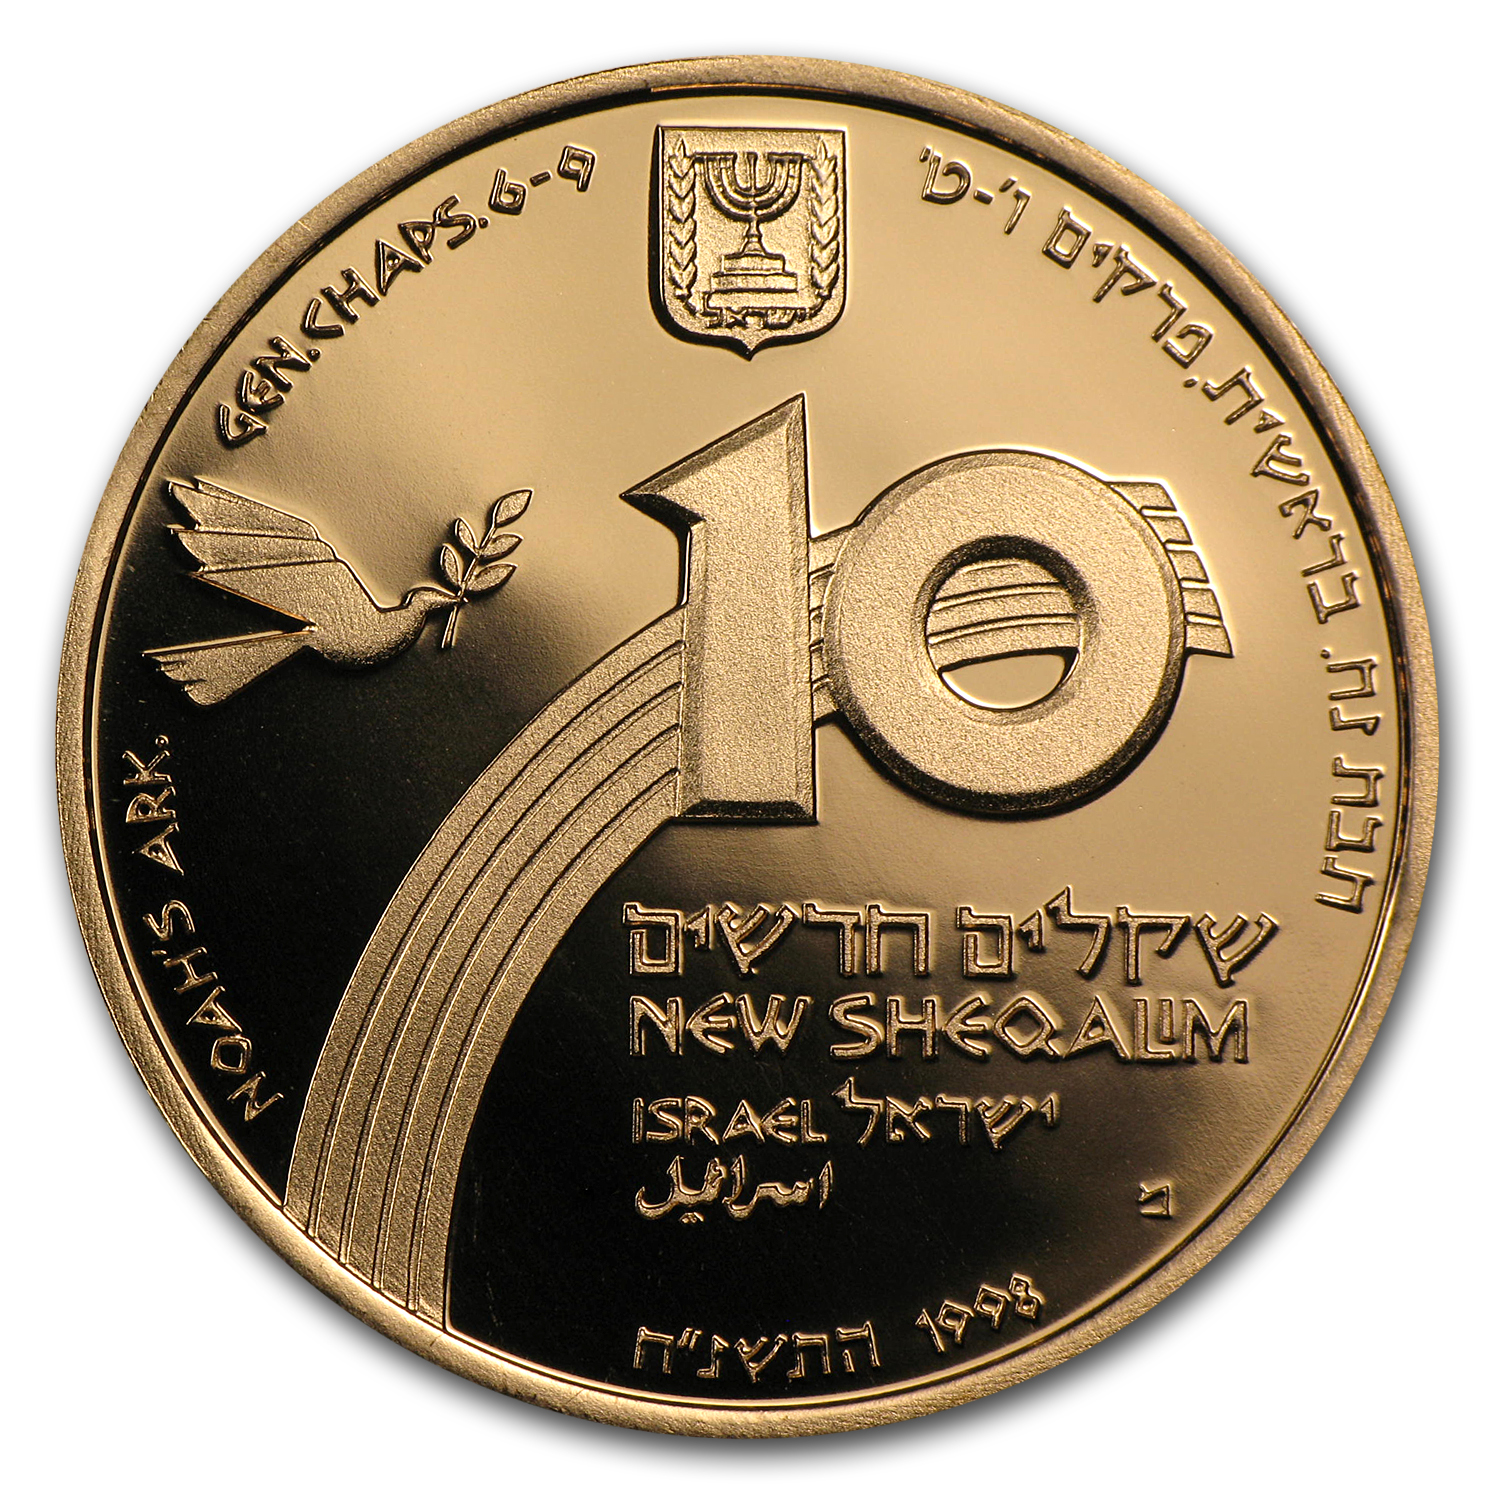 1998 Israel Noah's Ark 1/2 oz Proof Gold Coin w/ box & coa